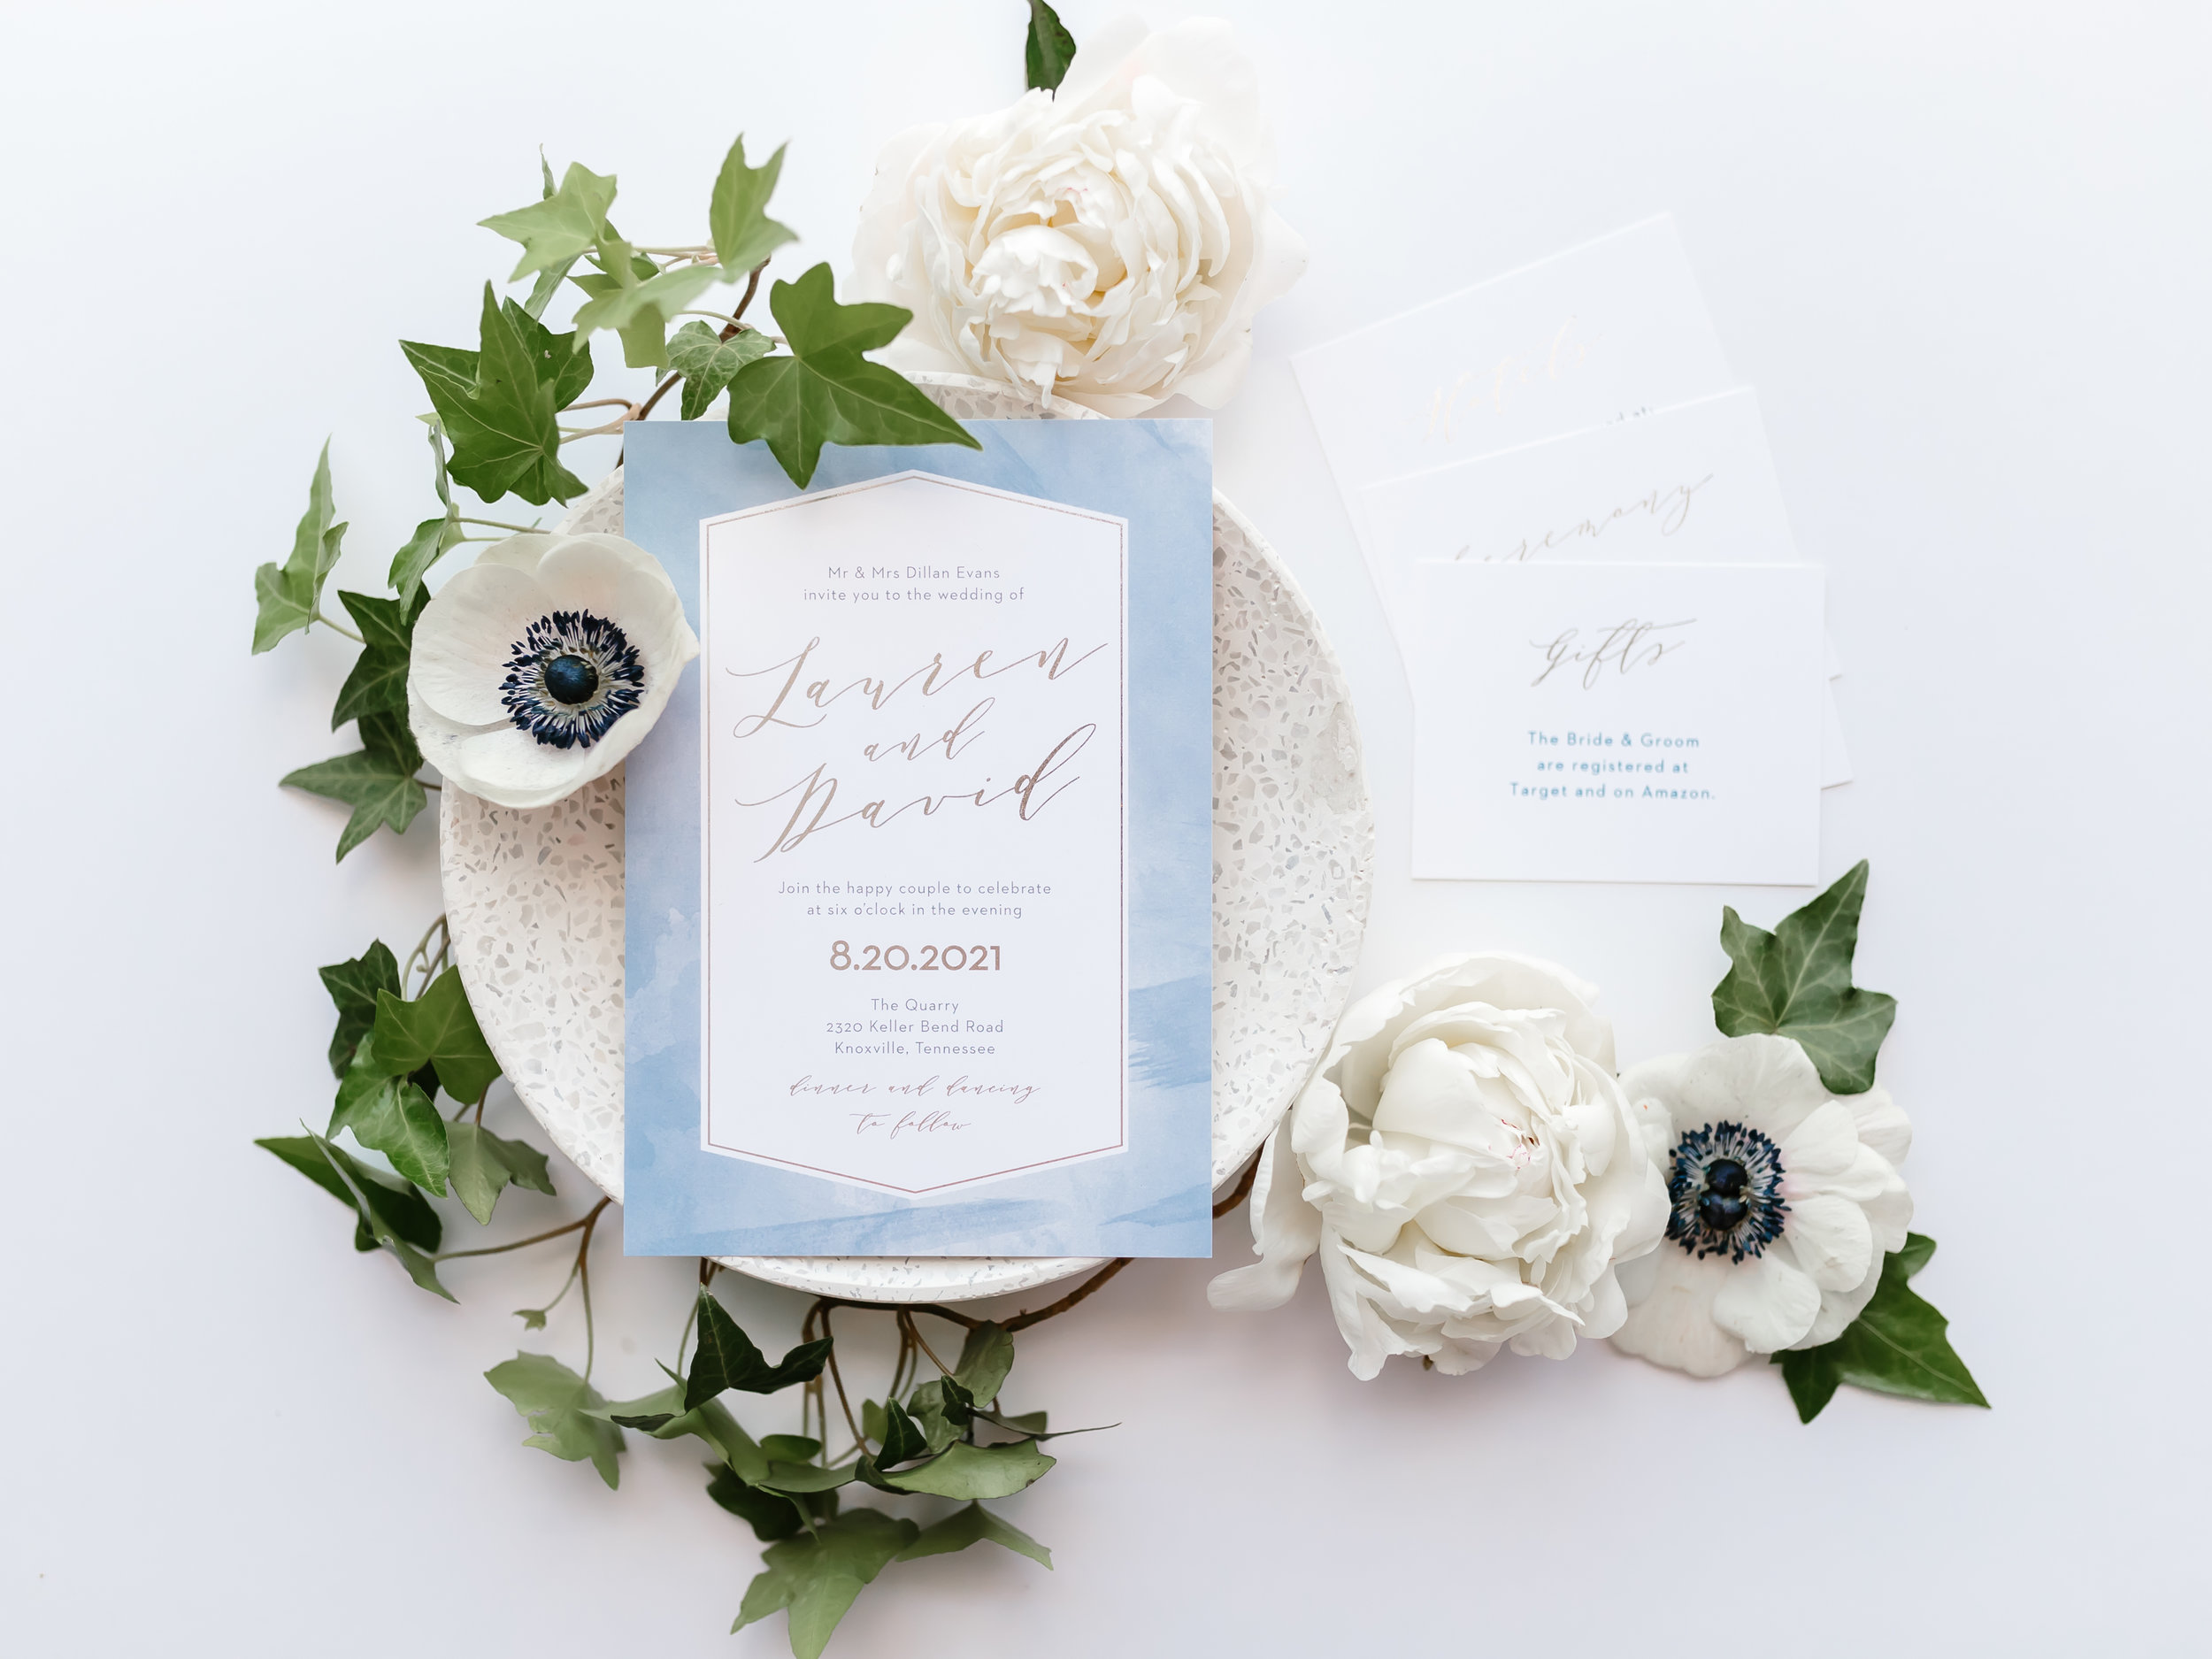 blue watercolor basic invite wedding invitation stationery suite white anemones white peonies ivy eucalyptus